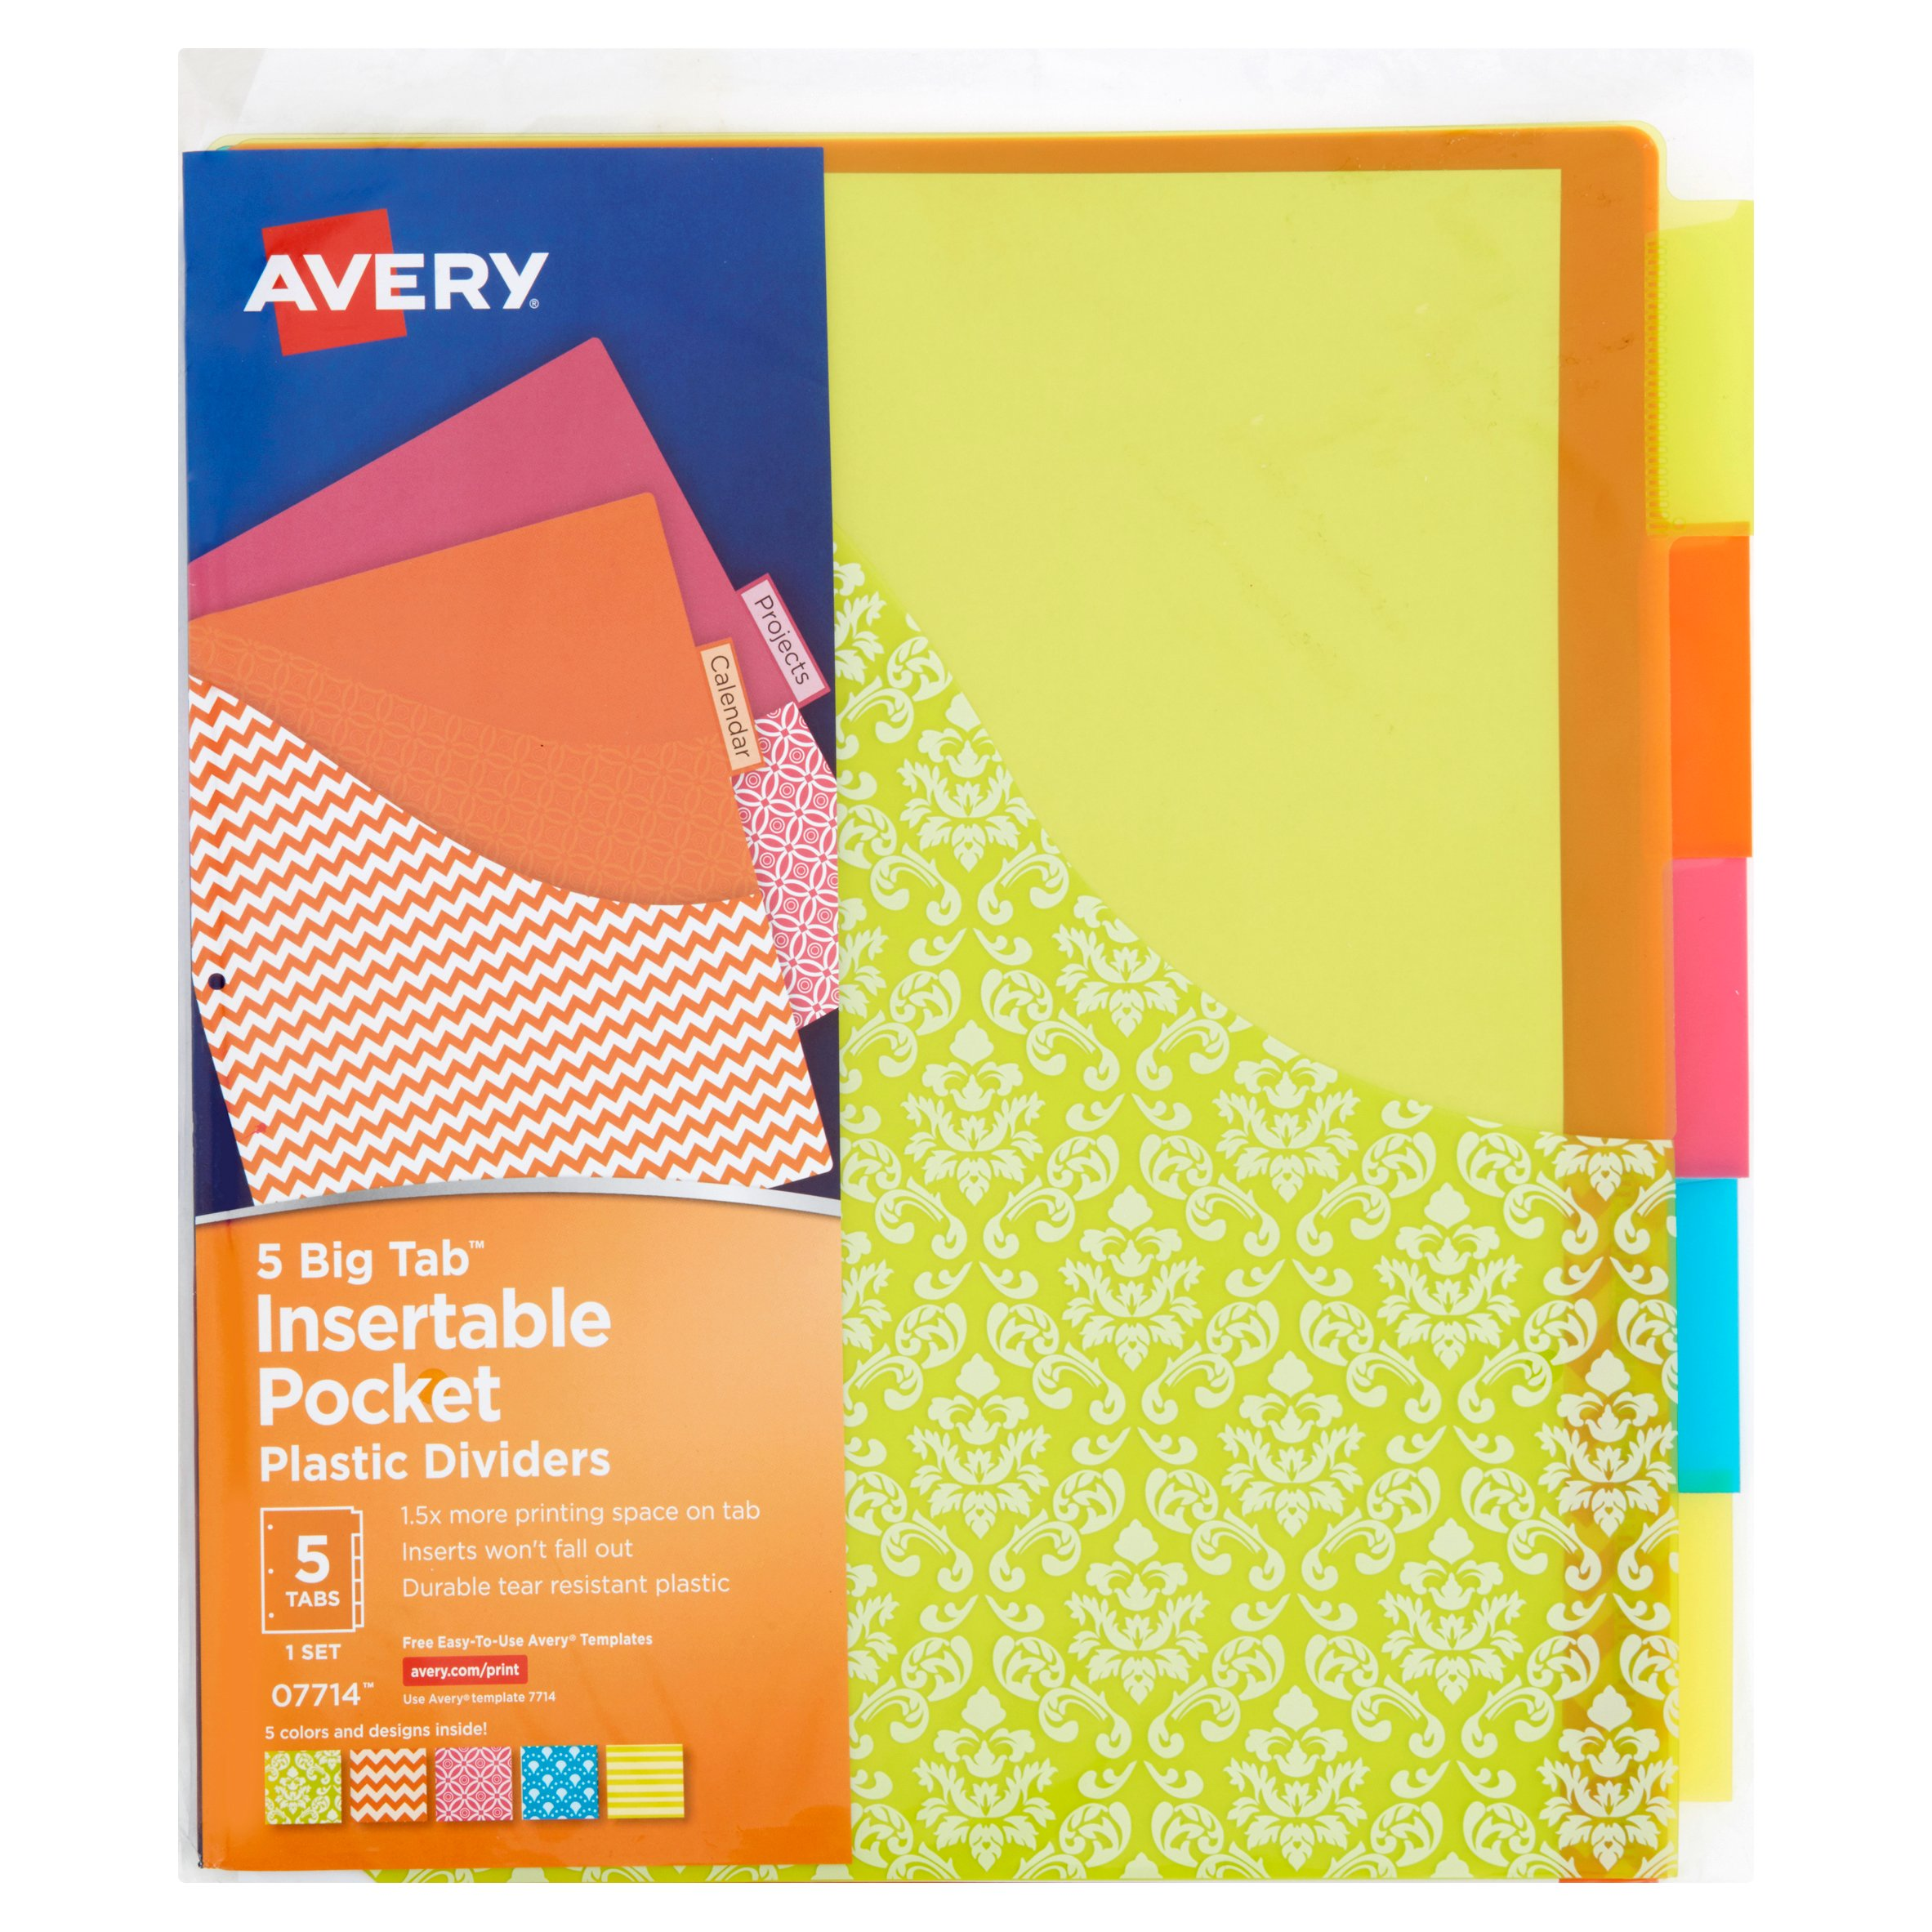 Avery(R) Big Tab(TM) Insertable Plastic Dividers with Pockets, Assorted Fashion Designs 5 Tabs, 1 Set (07714)